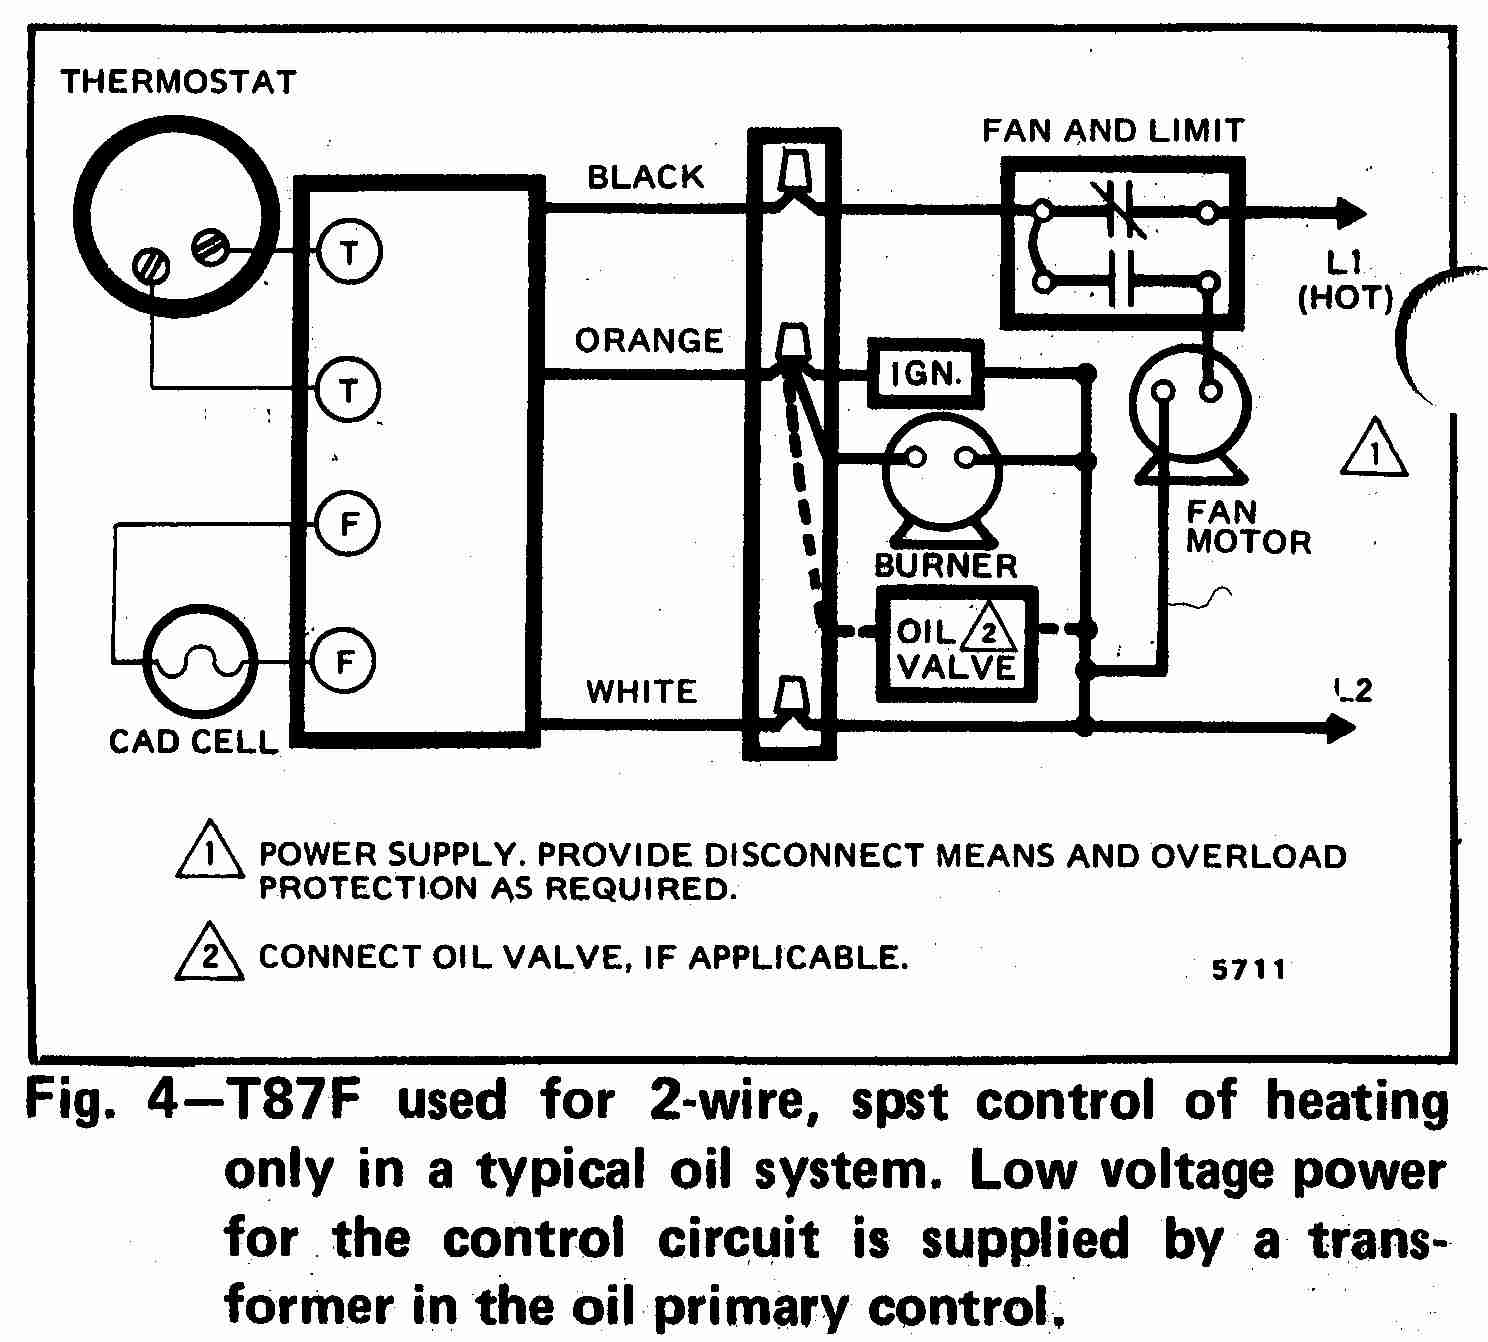 TT_T87F_0002_2W_DJF room thermostat wiring diagrams for hvac systems bryant air conditioner wiring diagram at alyssarenee.co